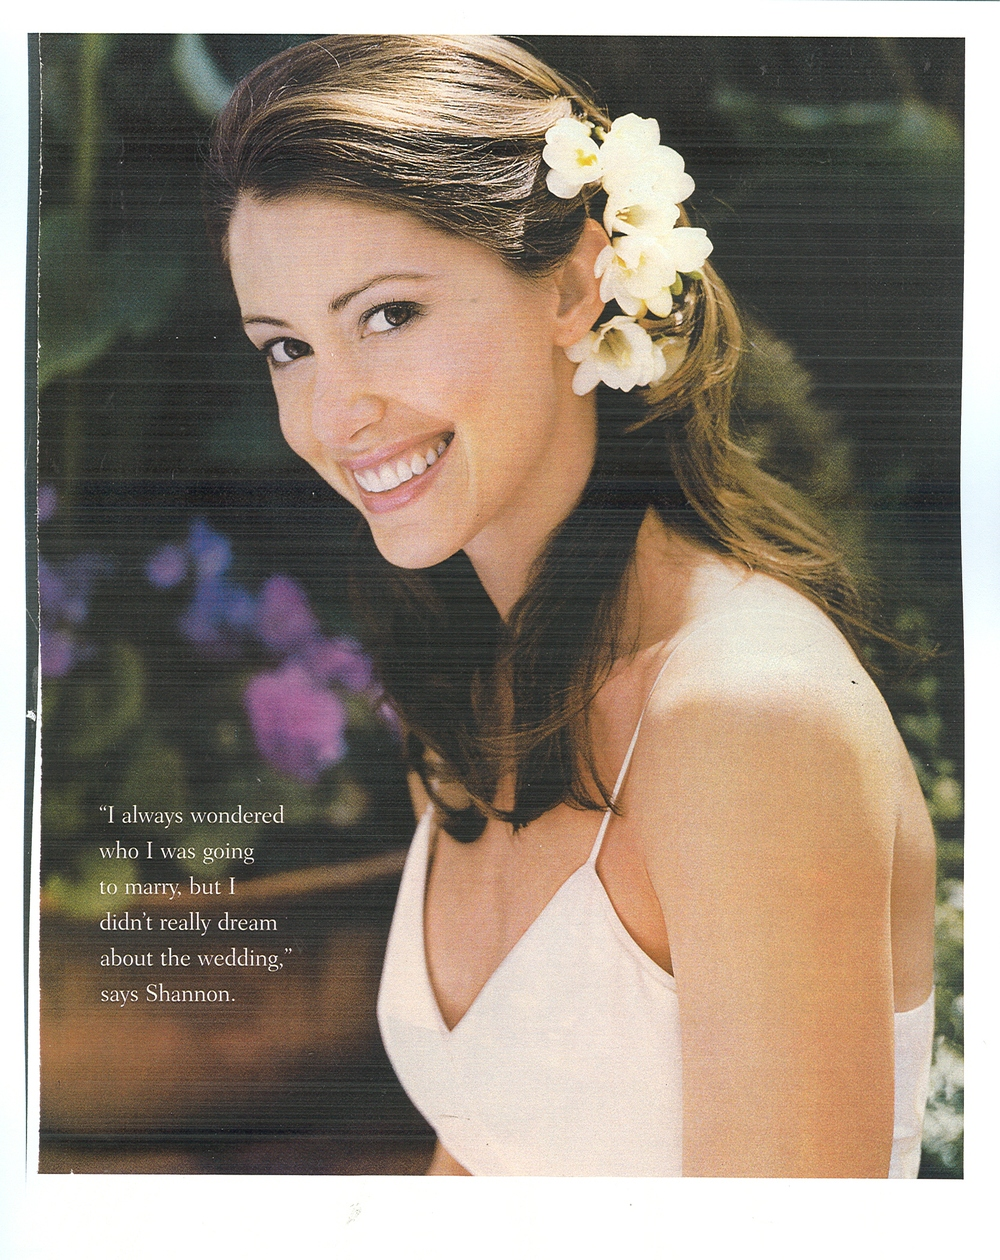 SE_InStyle Weddings_Summer 2002_7.jpg